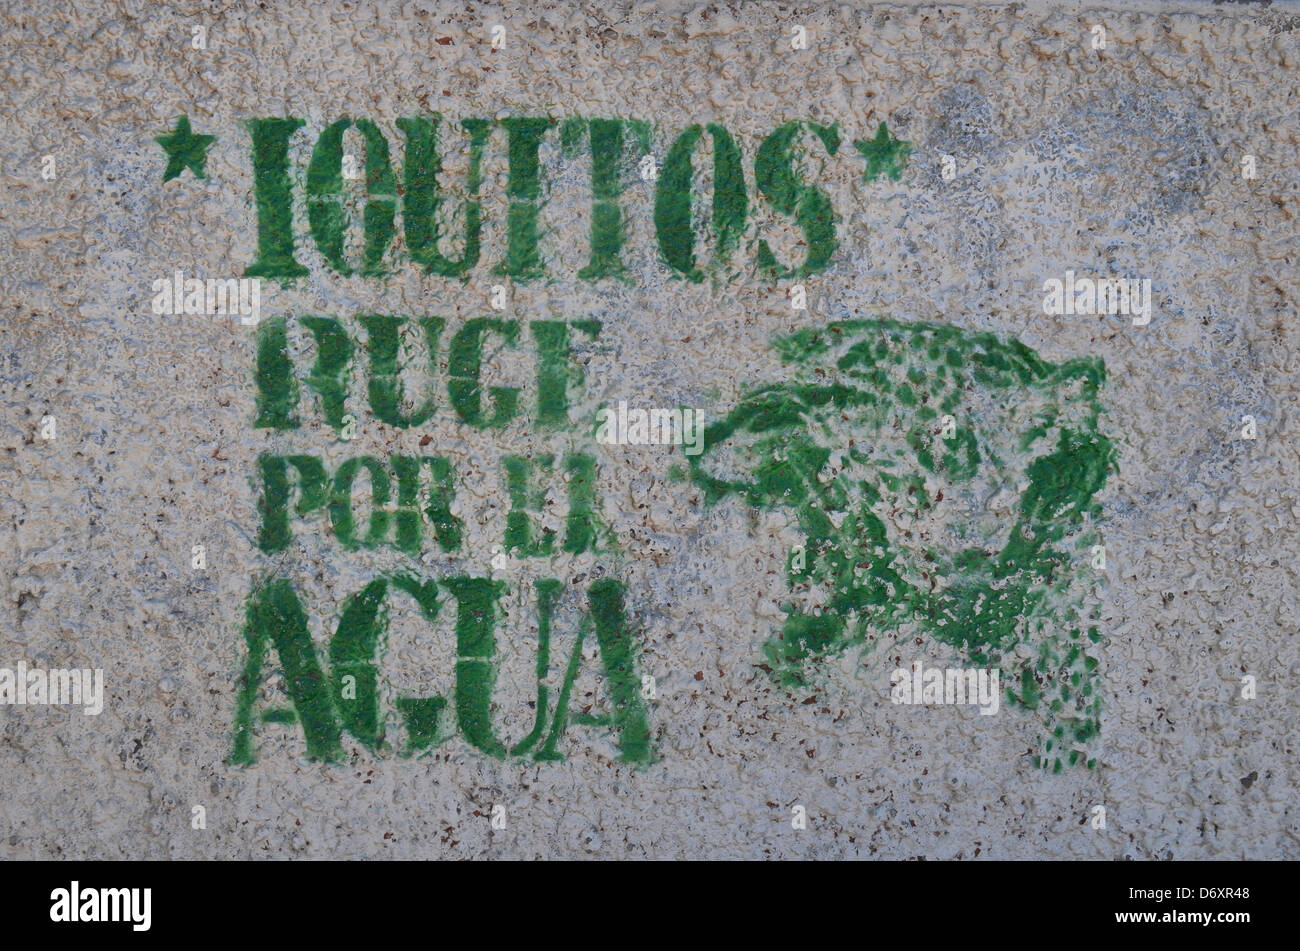 ´Iquitos - water roars´ stencil graffiti on a wall in Iquitos, Peruvian Amazonia - Stock Image